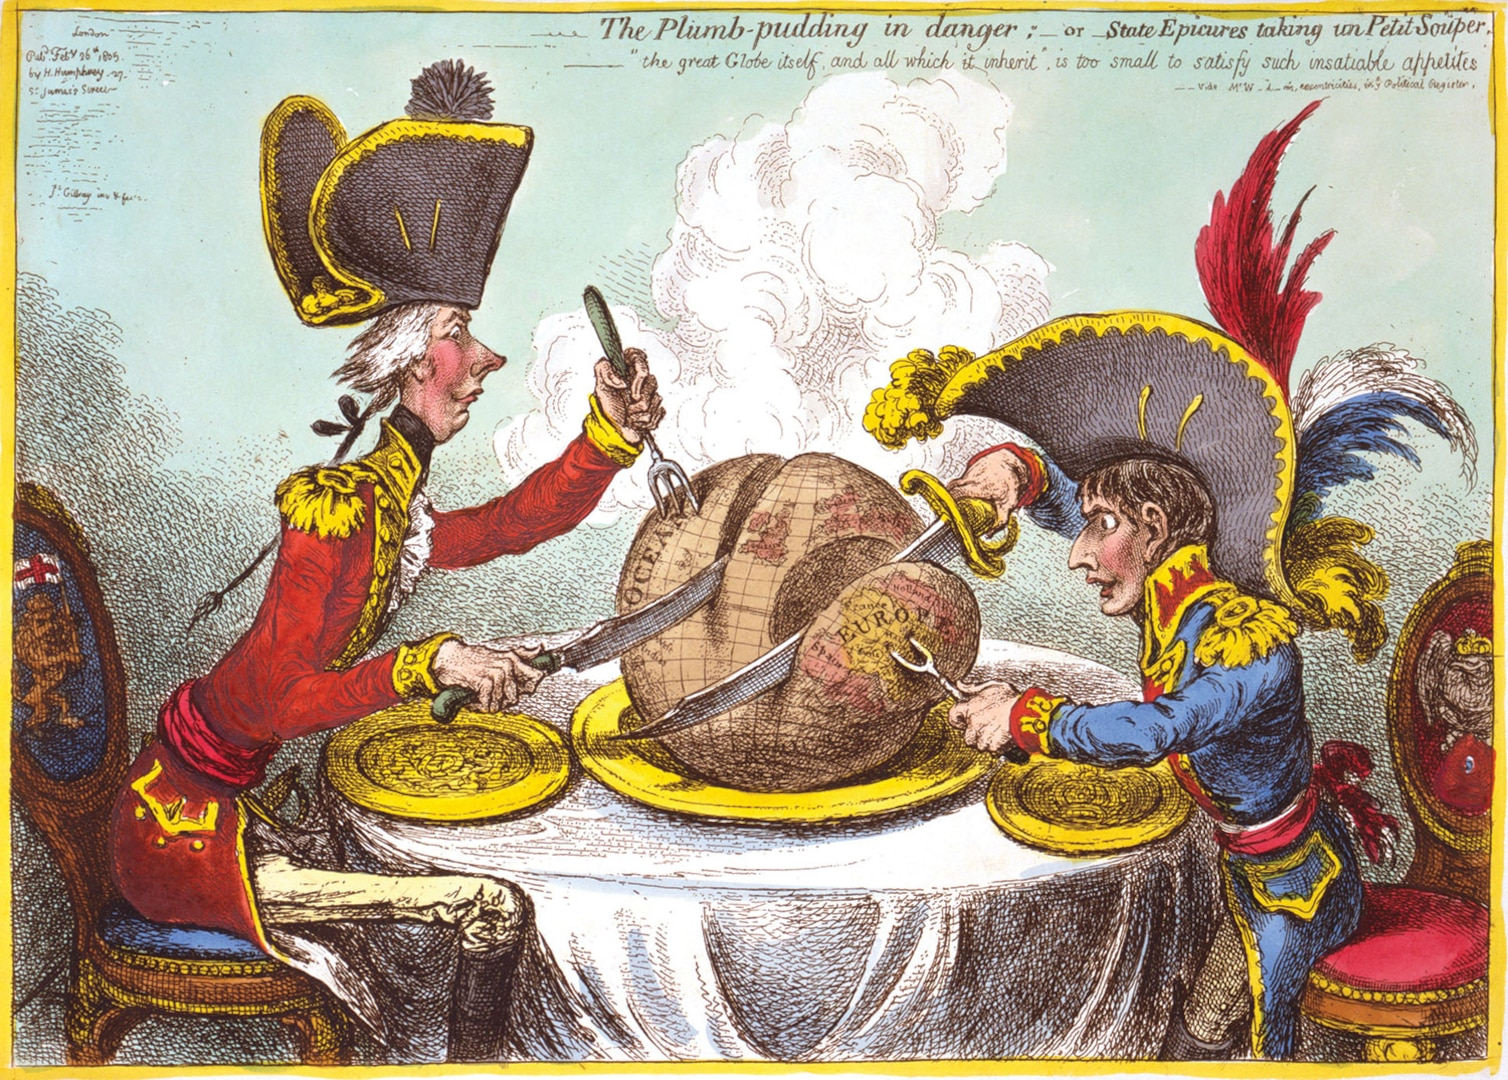 Figure 2.1. Britain (William Pitt) and Napoleon Carving Up the World. Source: James Gillray, The Plumb-Pudding [sic] in Danger (London: H. Humphrey, 1805).